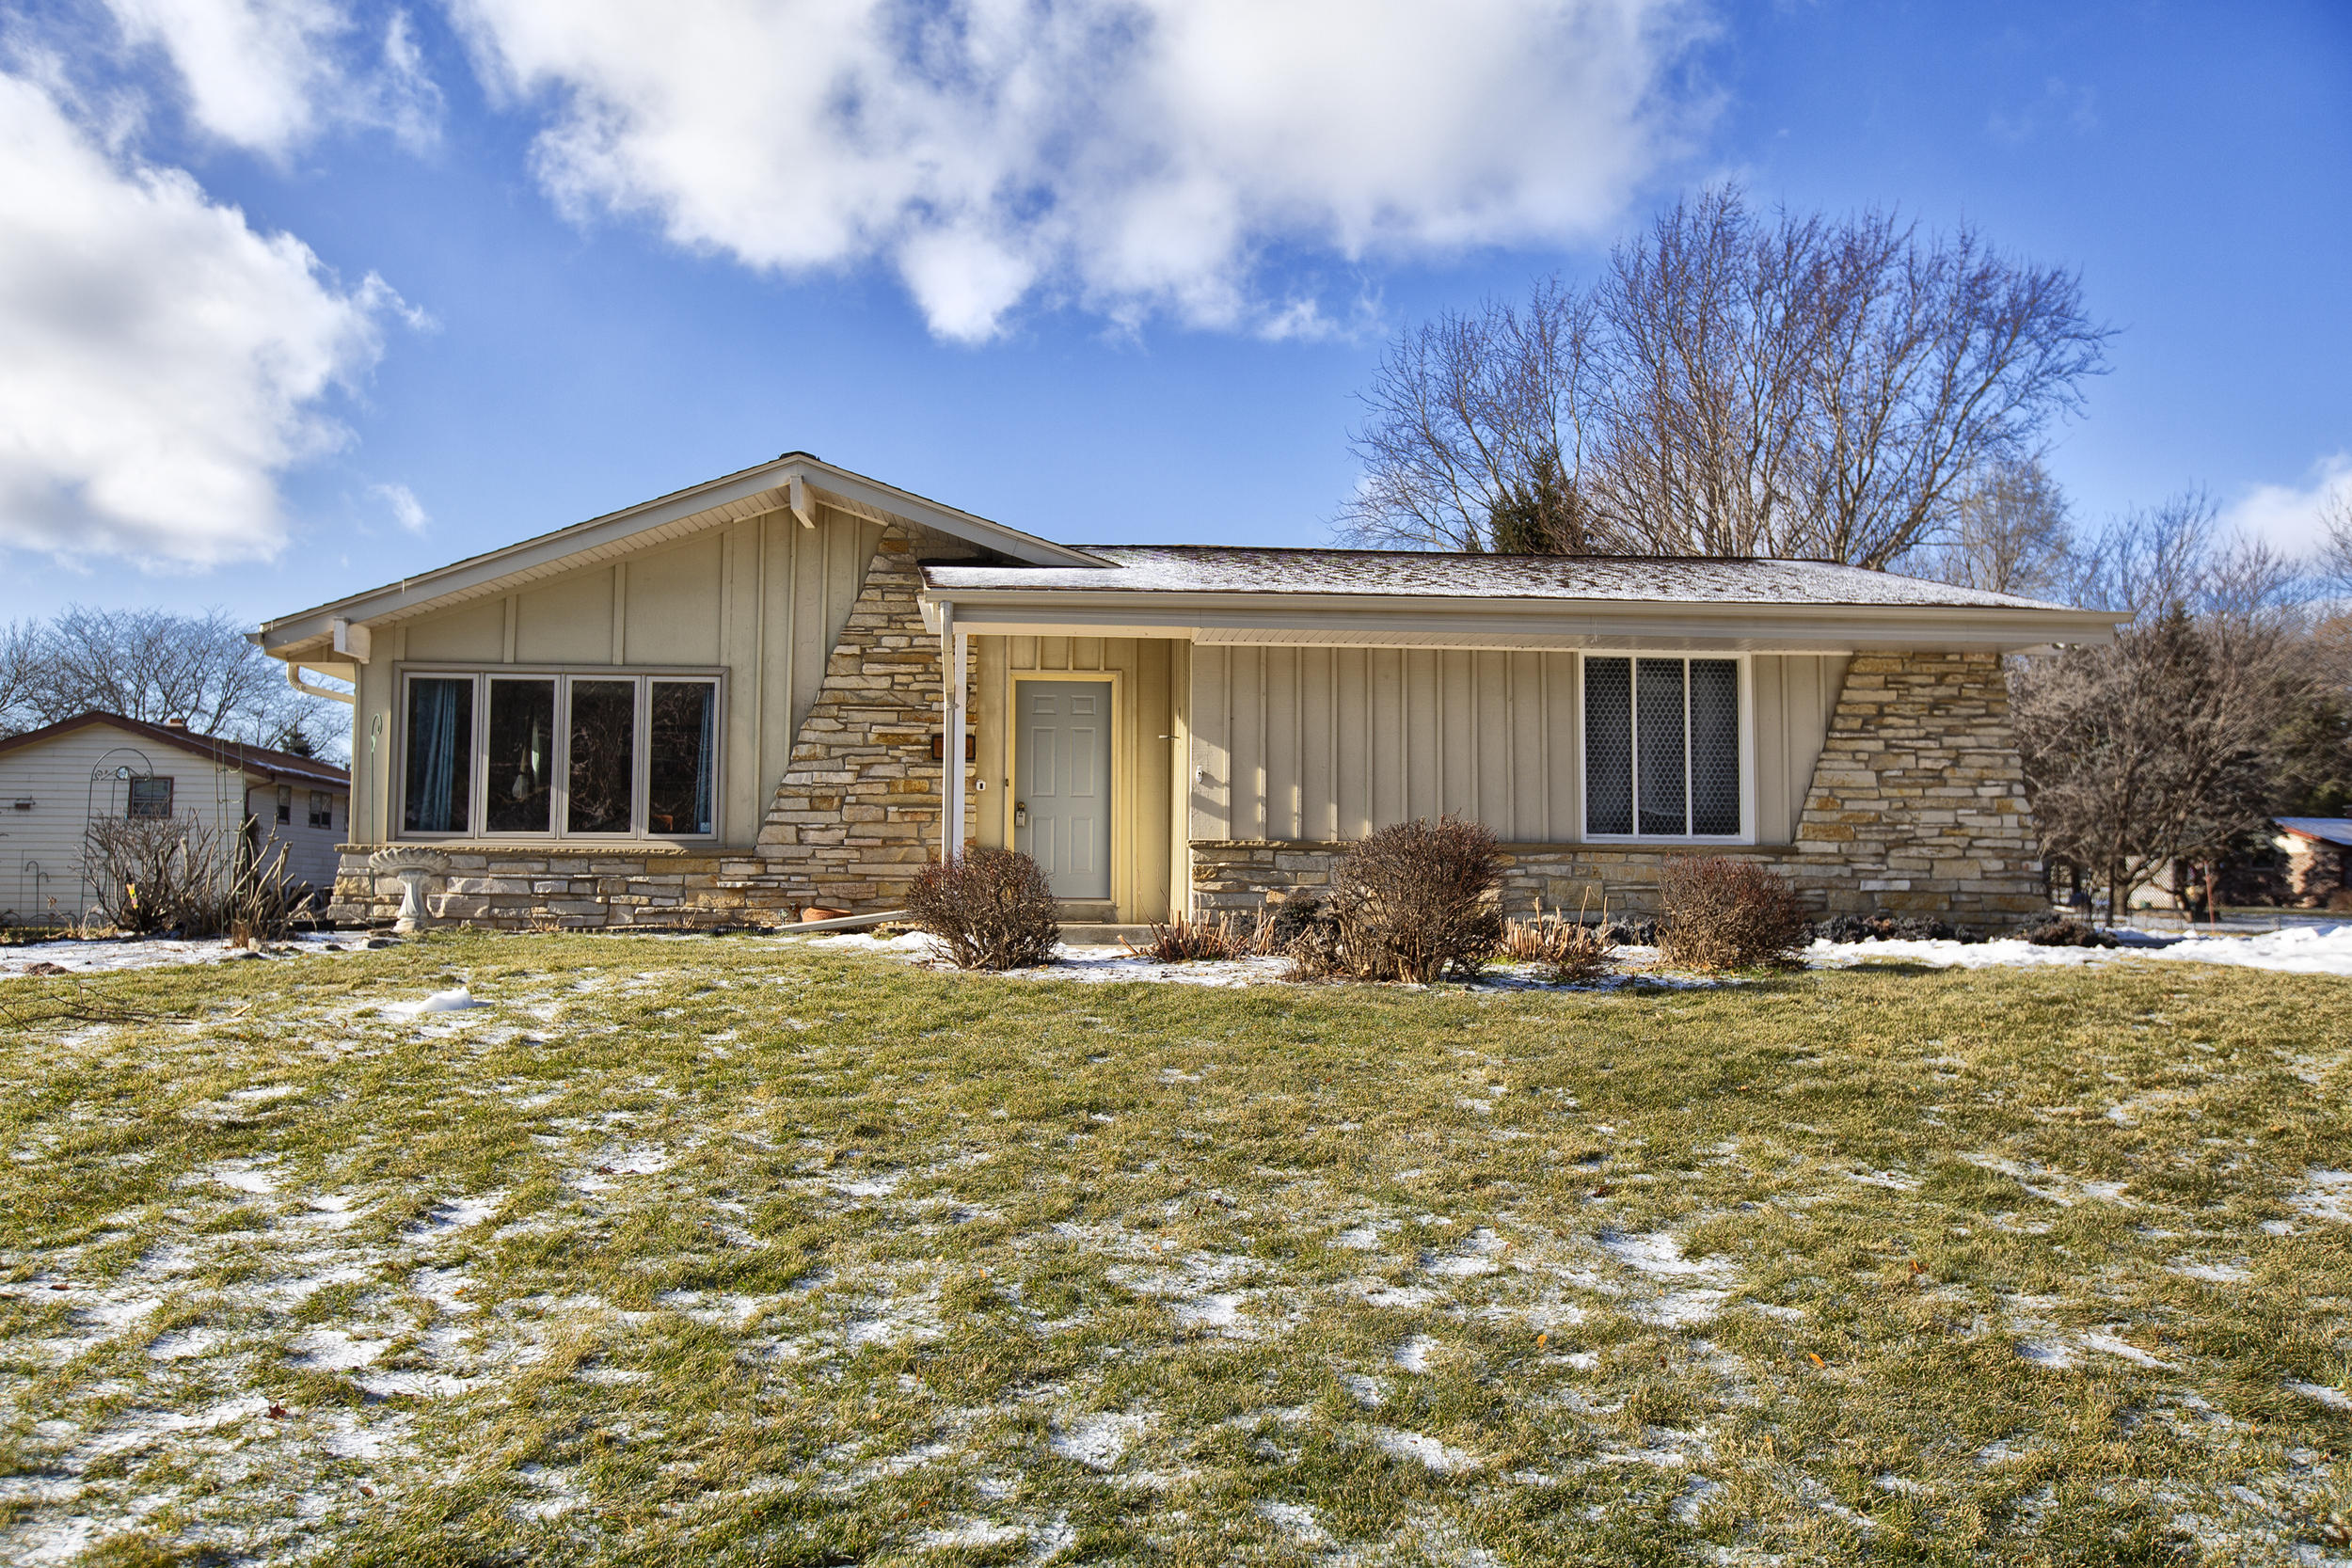 756 Imperial Dr, Hartland, Wisconsin 53029, 3 Bedrooms Bedrooms, 6 Rooms Rooms,1 BathroomBathrooms,Single-Family,For Sale,Imperial Dr,1622653